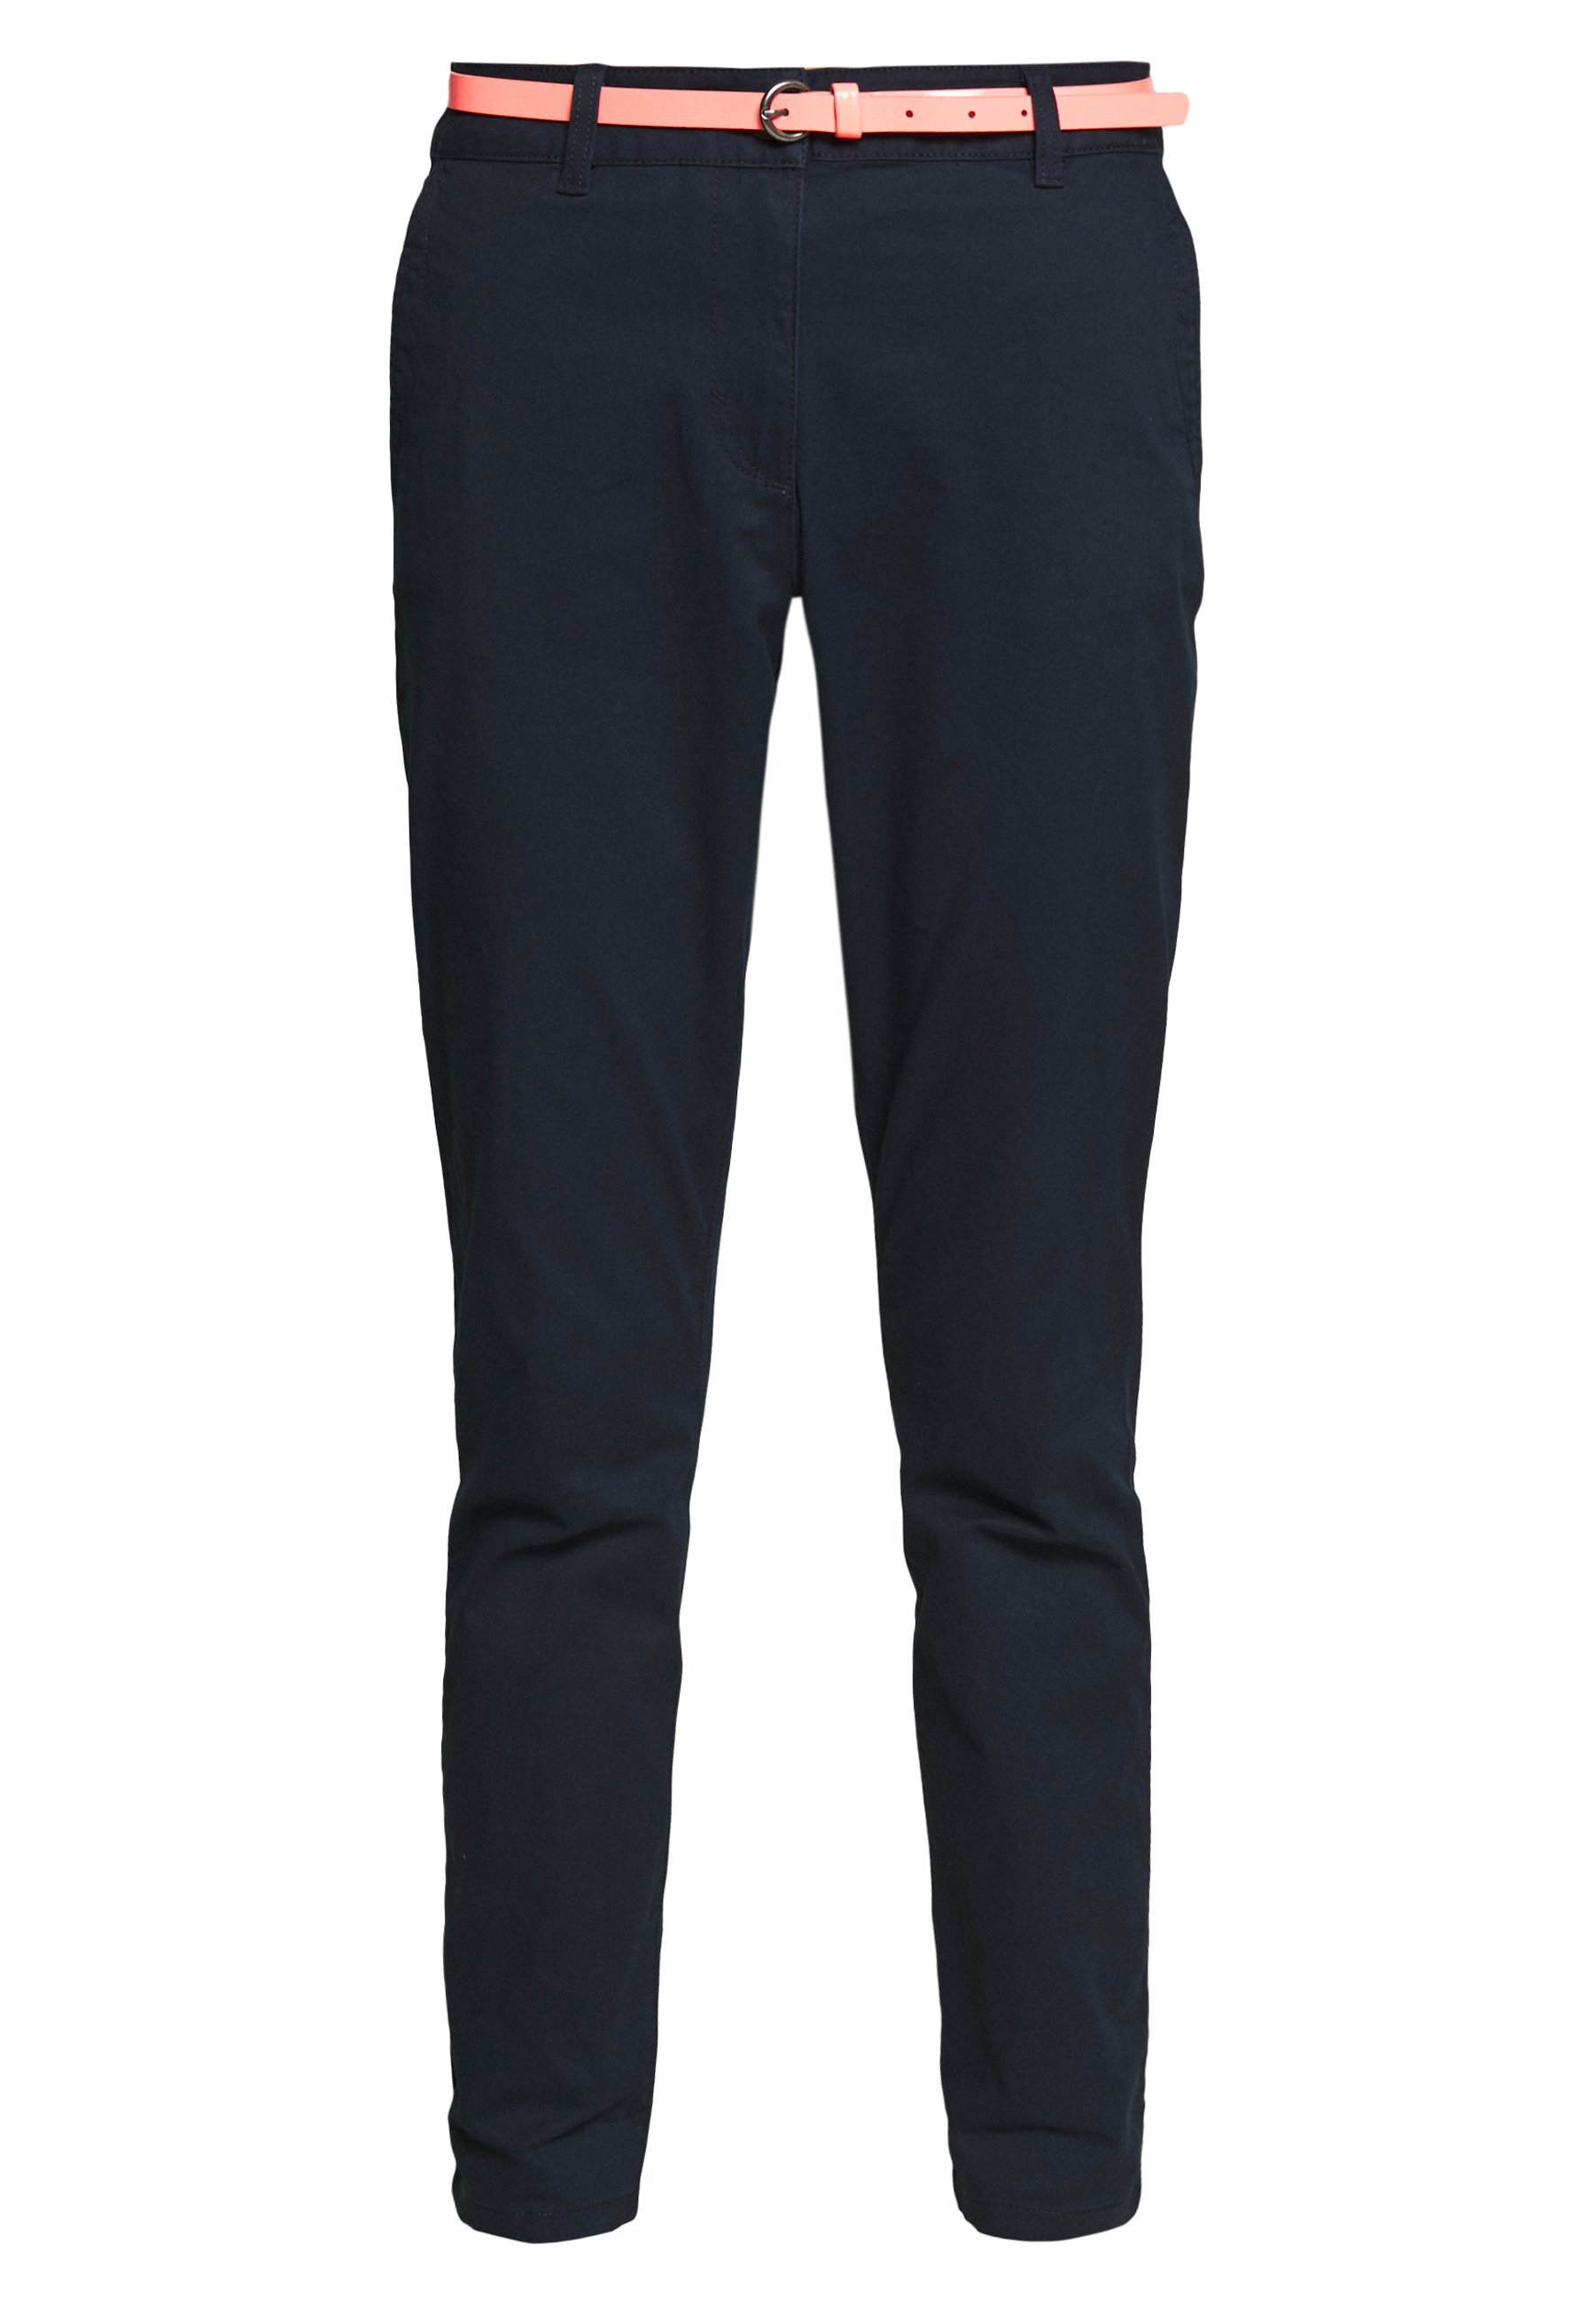 TOM TAILOR BELTED SLIM - Chino - sky captain blue -  3RvhY